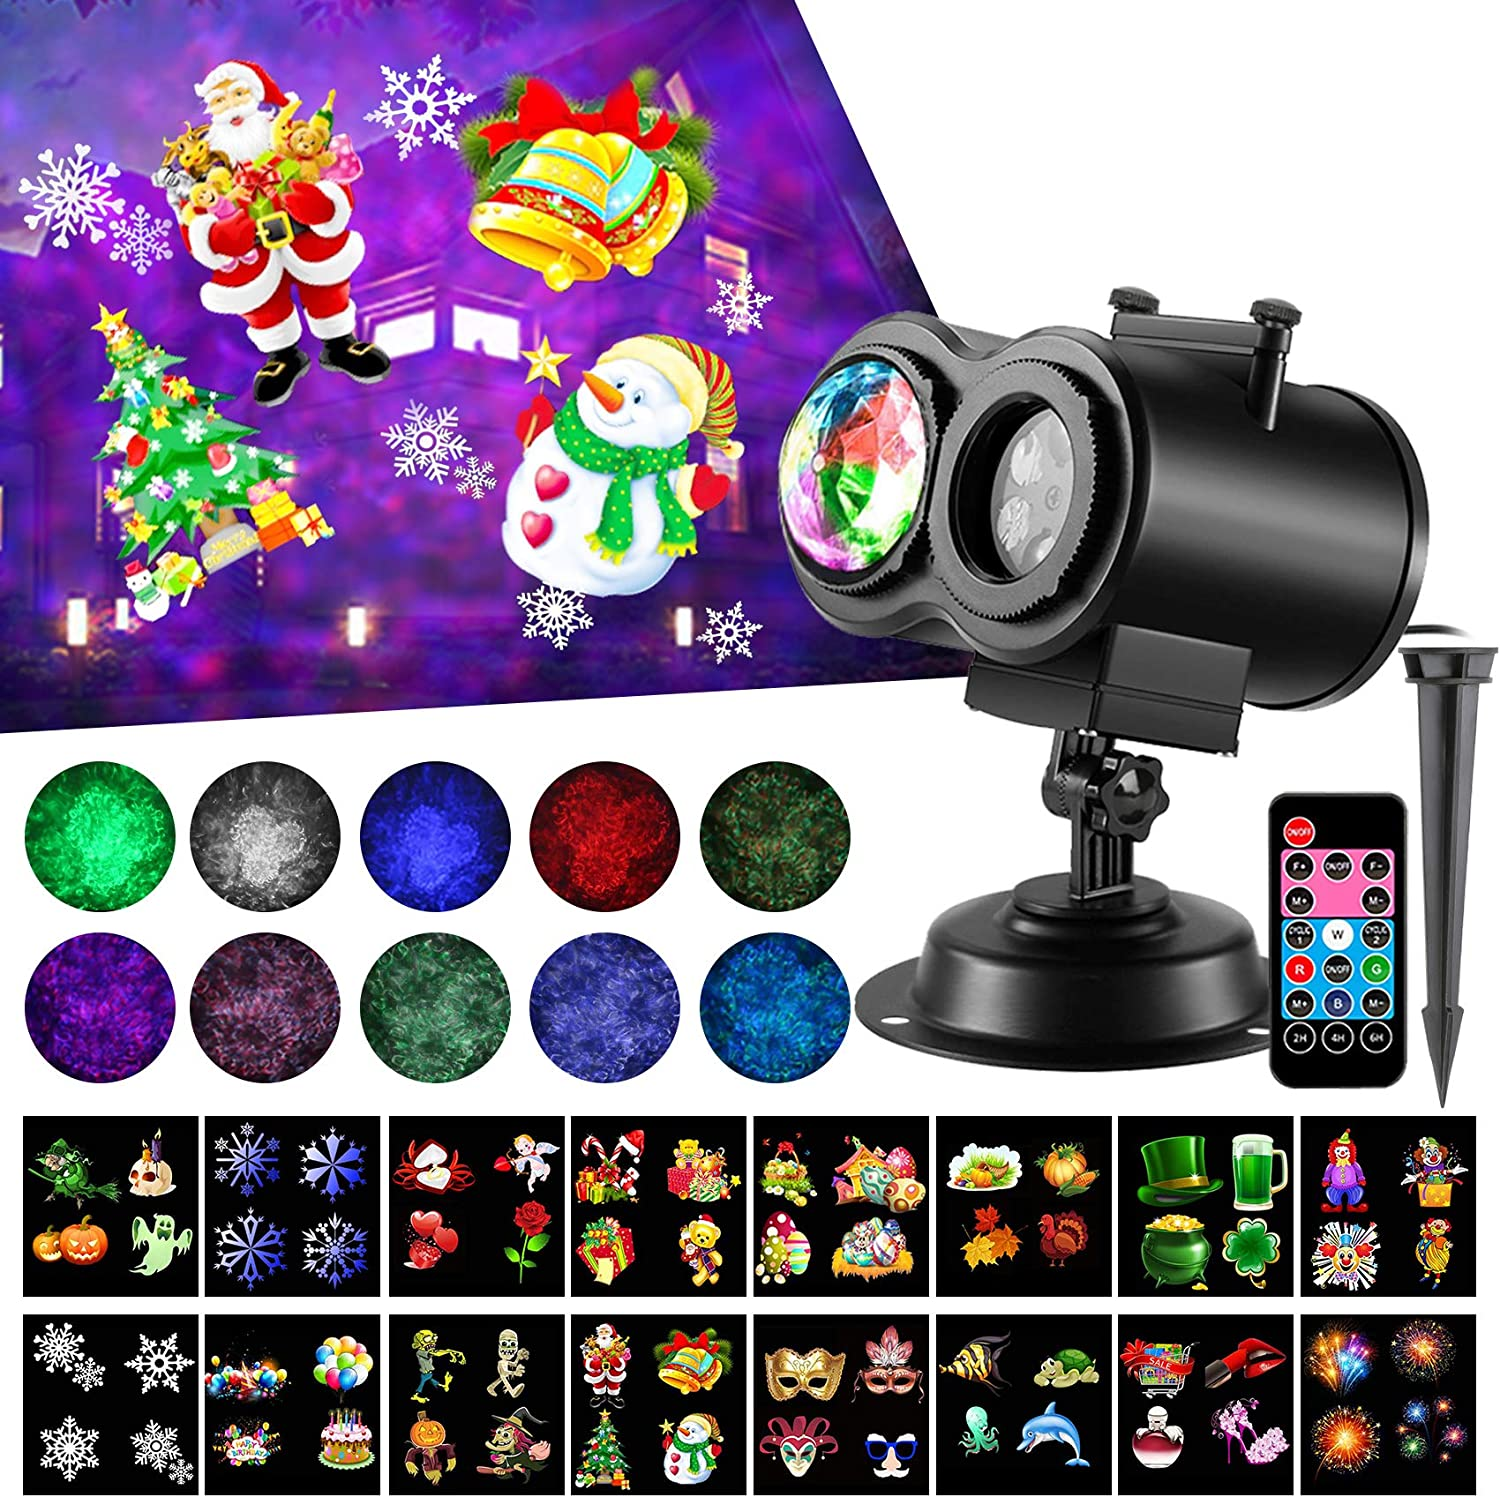 LED Christmas Projector Lights 2-in-1 Sl Wave Ocean Fixed price for sale 16 Super Special SALE held